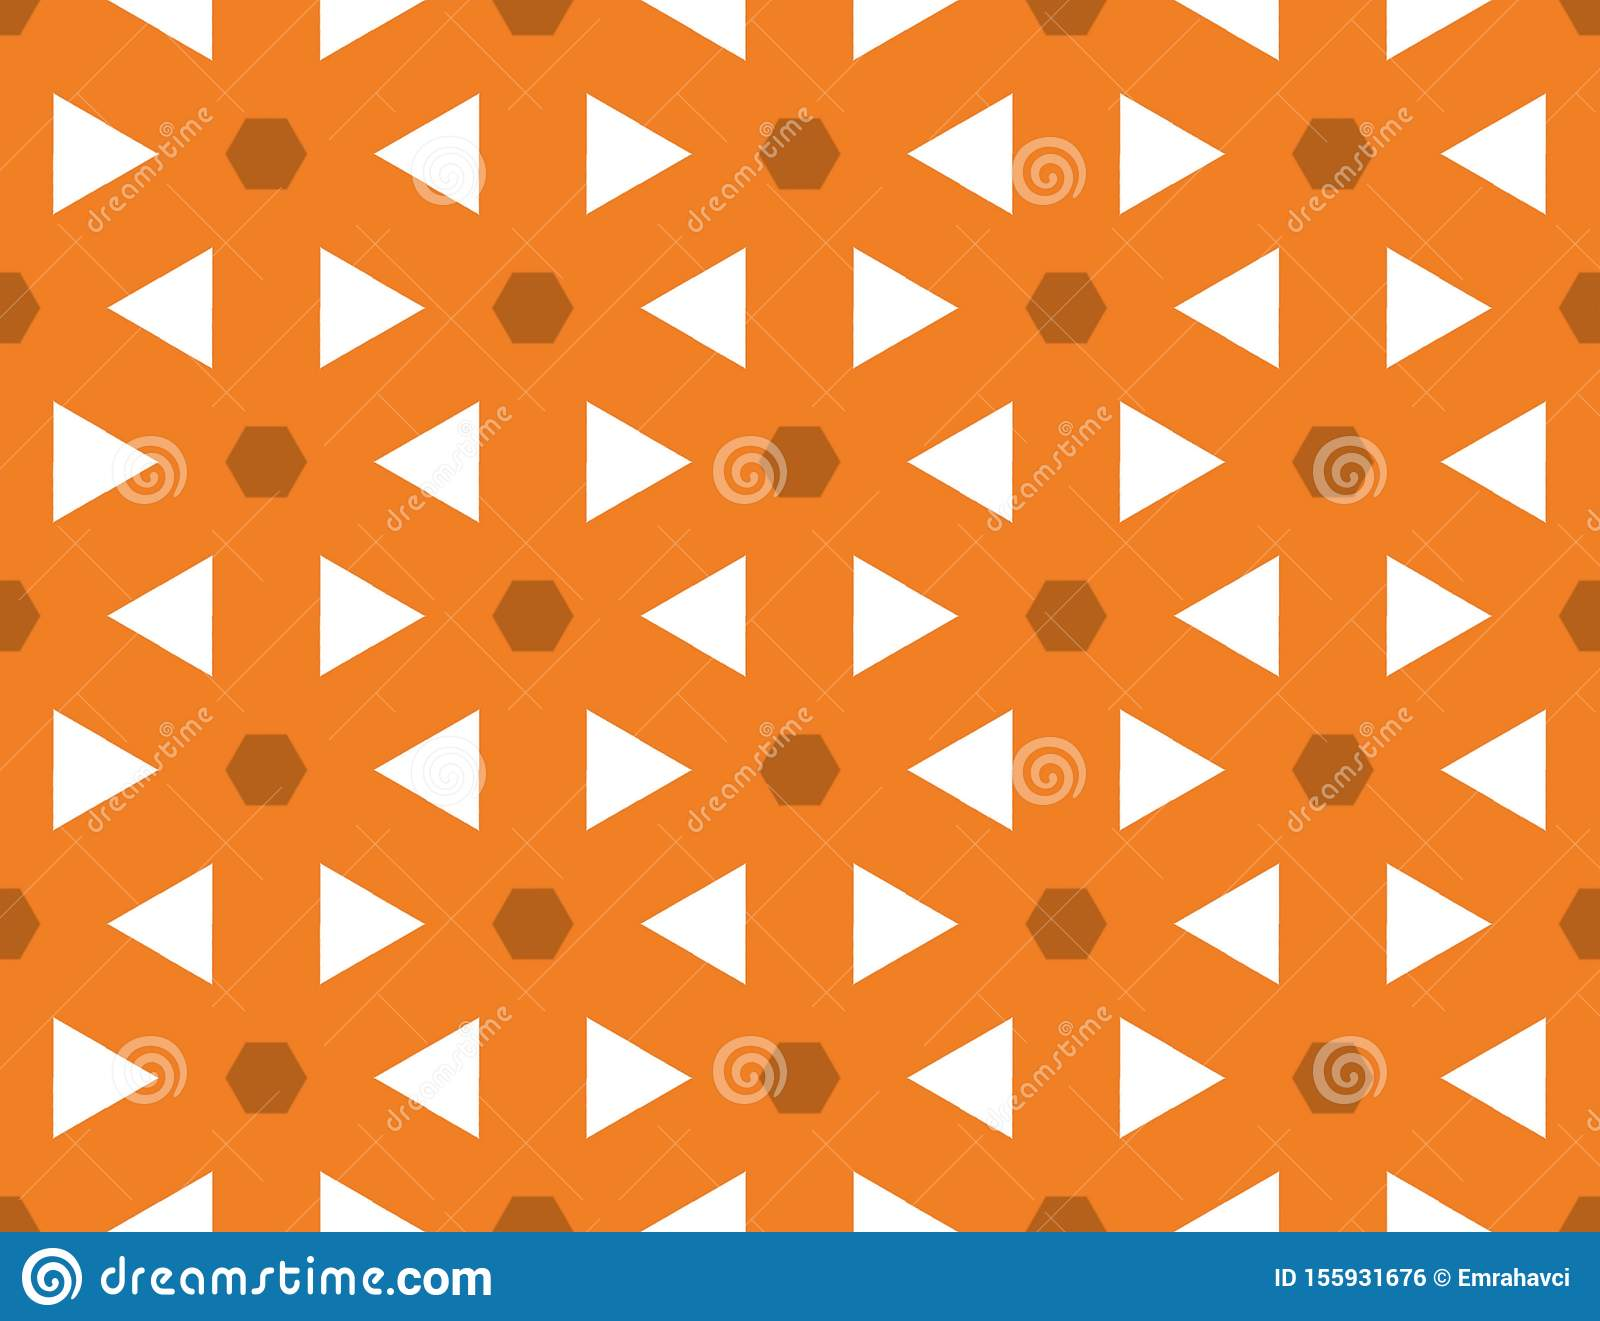 Seamless geometric pattern. Shaped brown hexagons and white triangle, orange background.